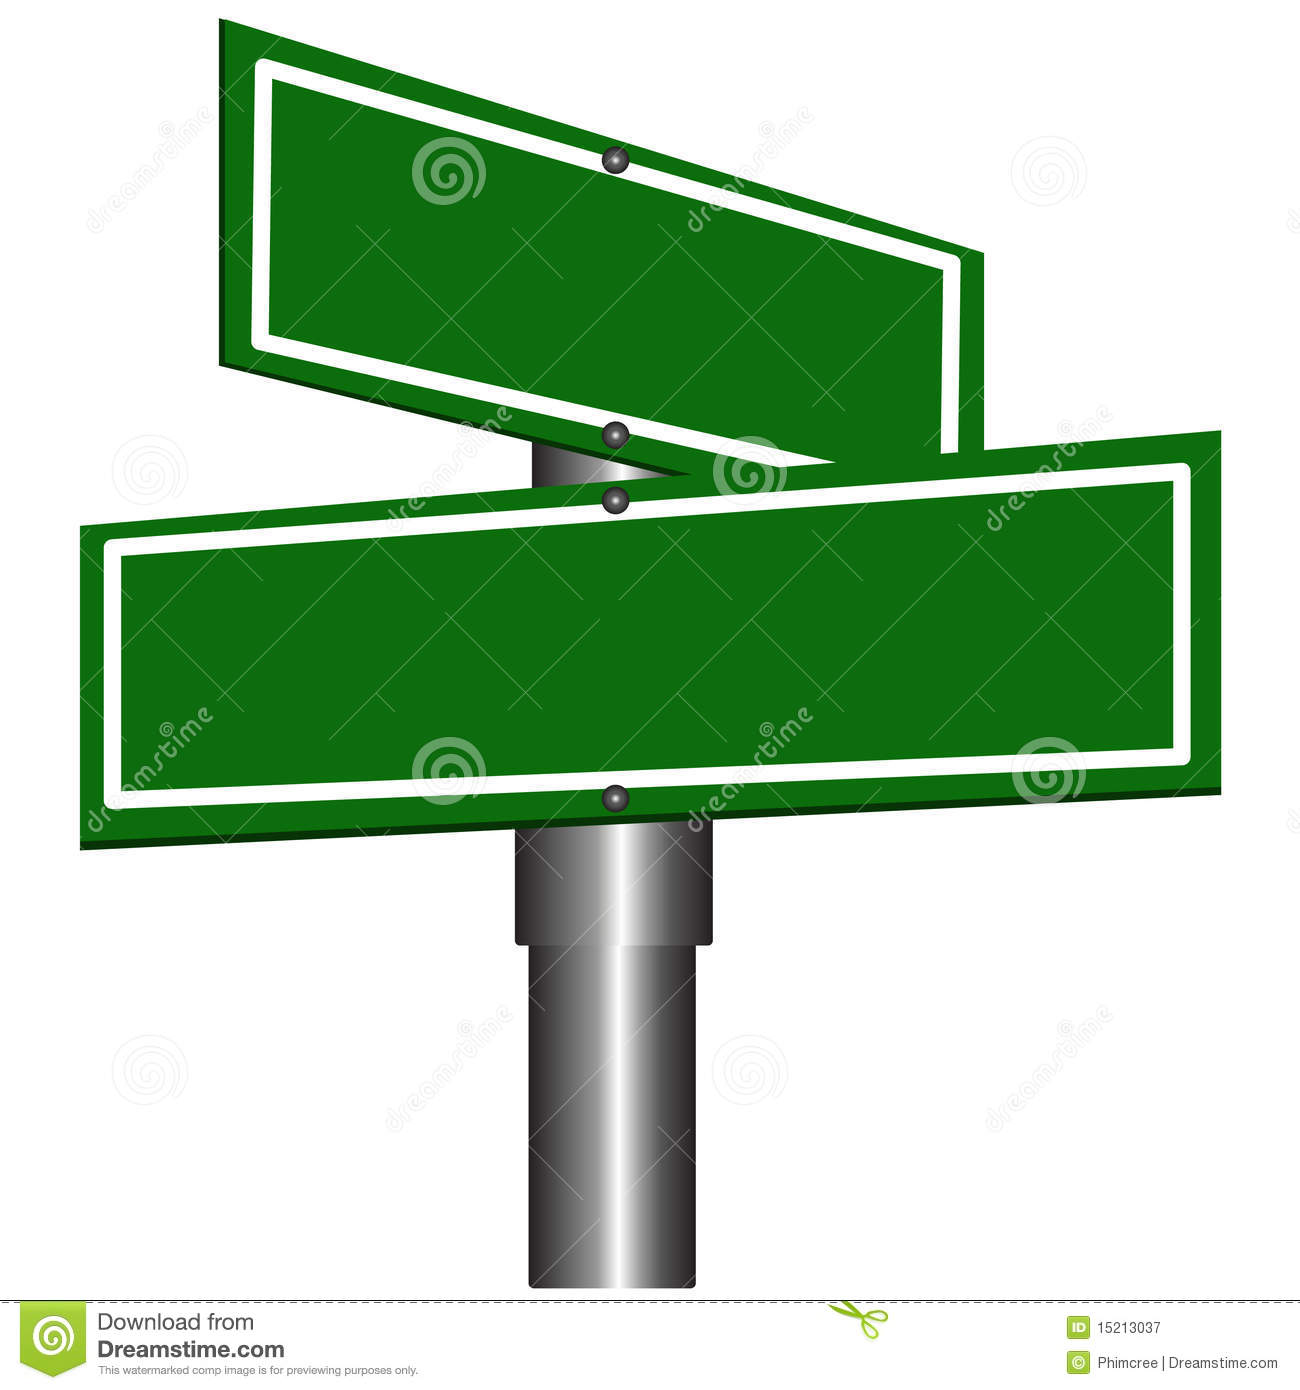 Stock images blank templates and signs hq clipart clip royalty free download 79+ Street Sign Clipart | ClipartLook clip royalty free download